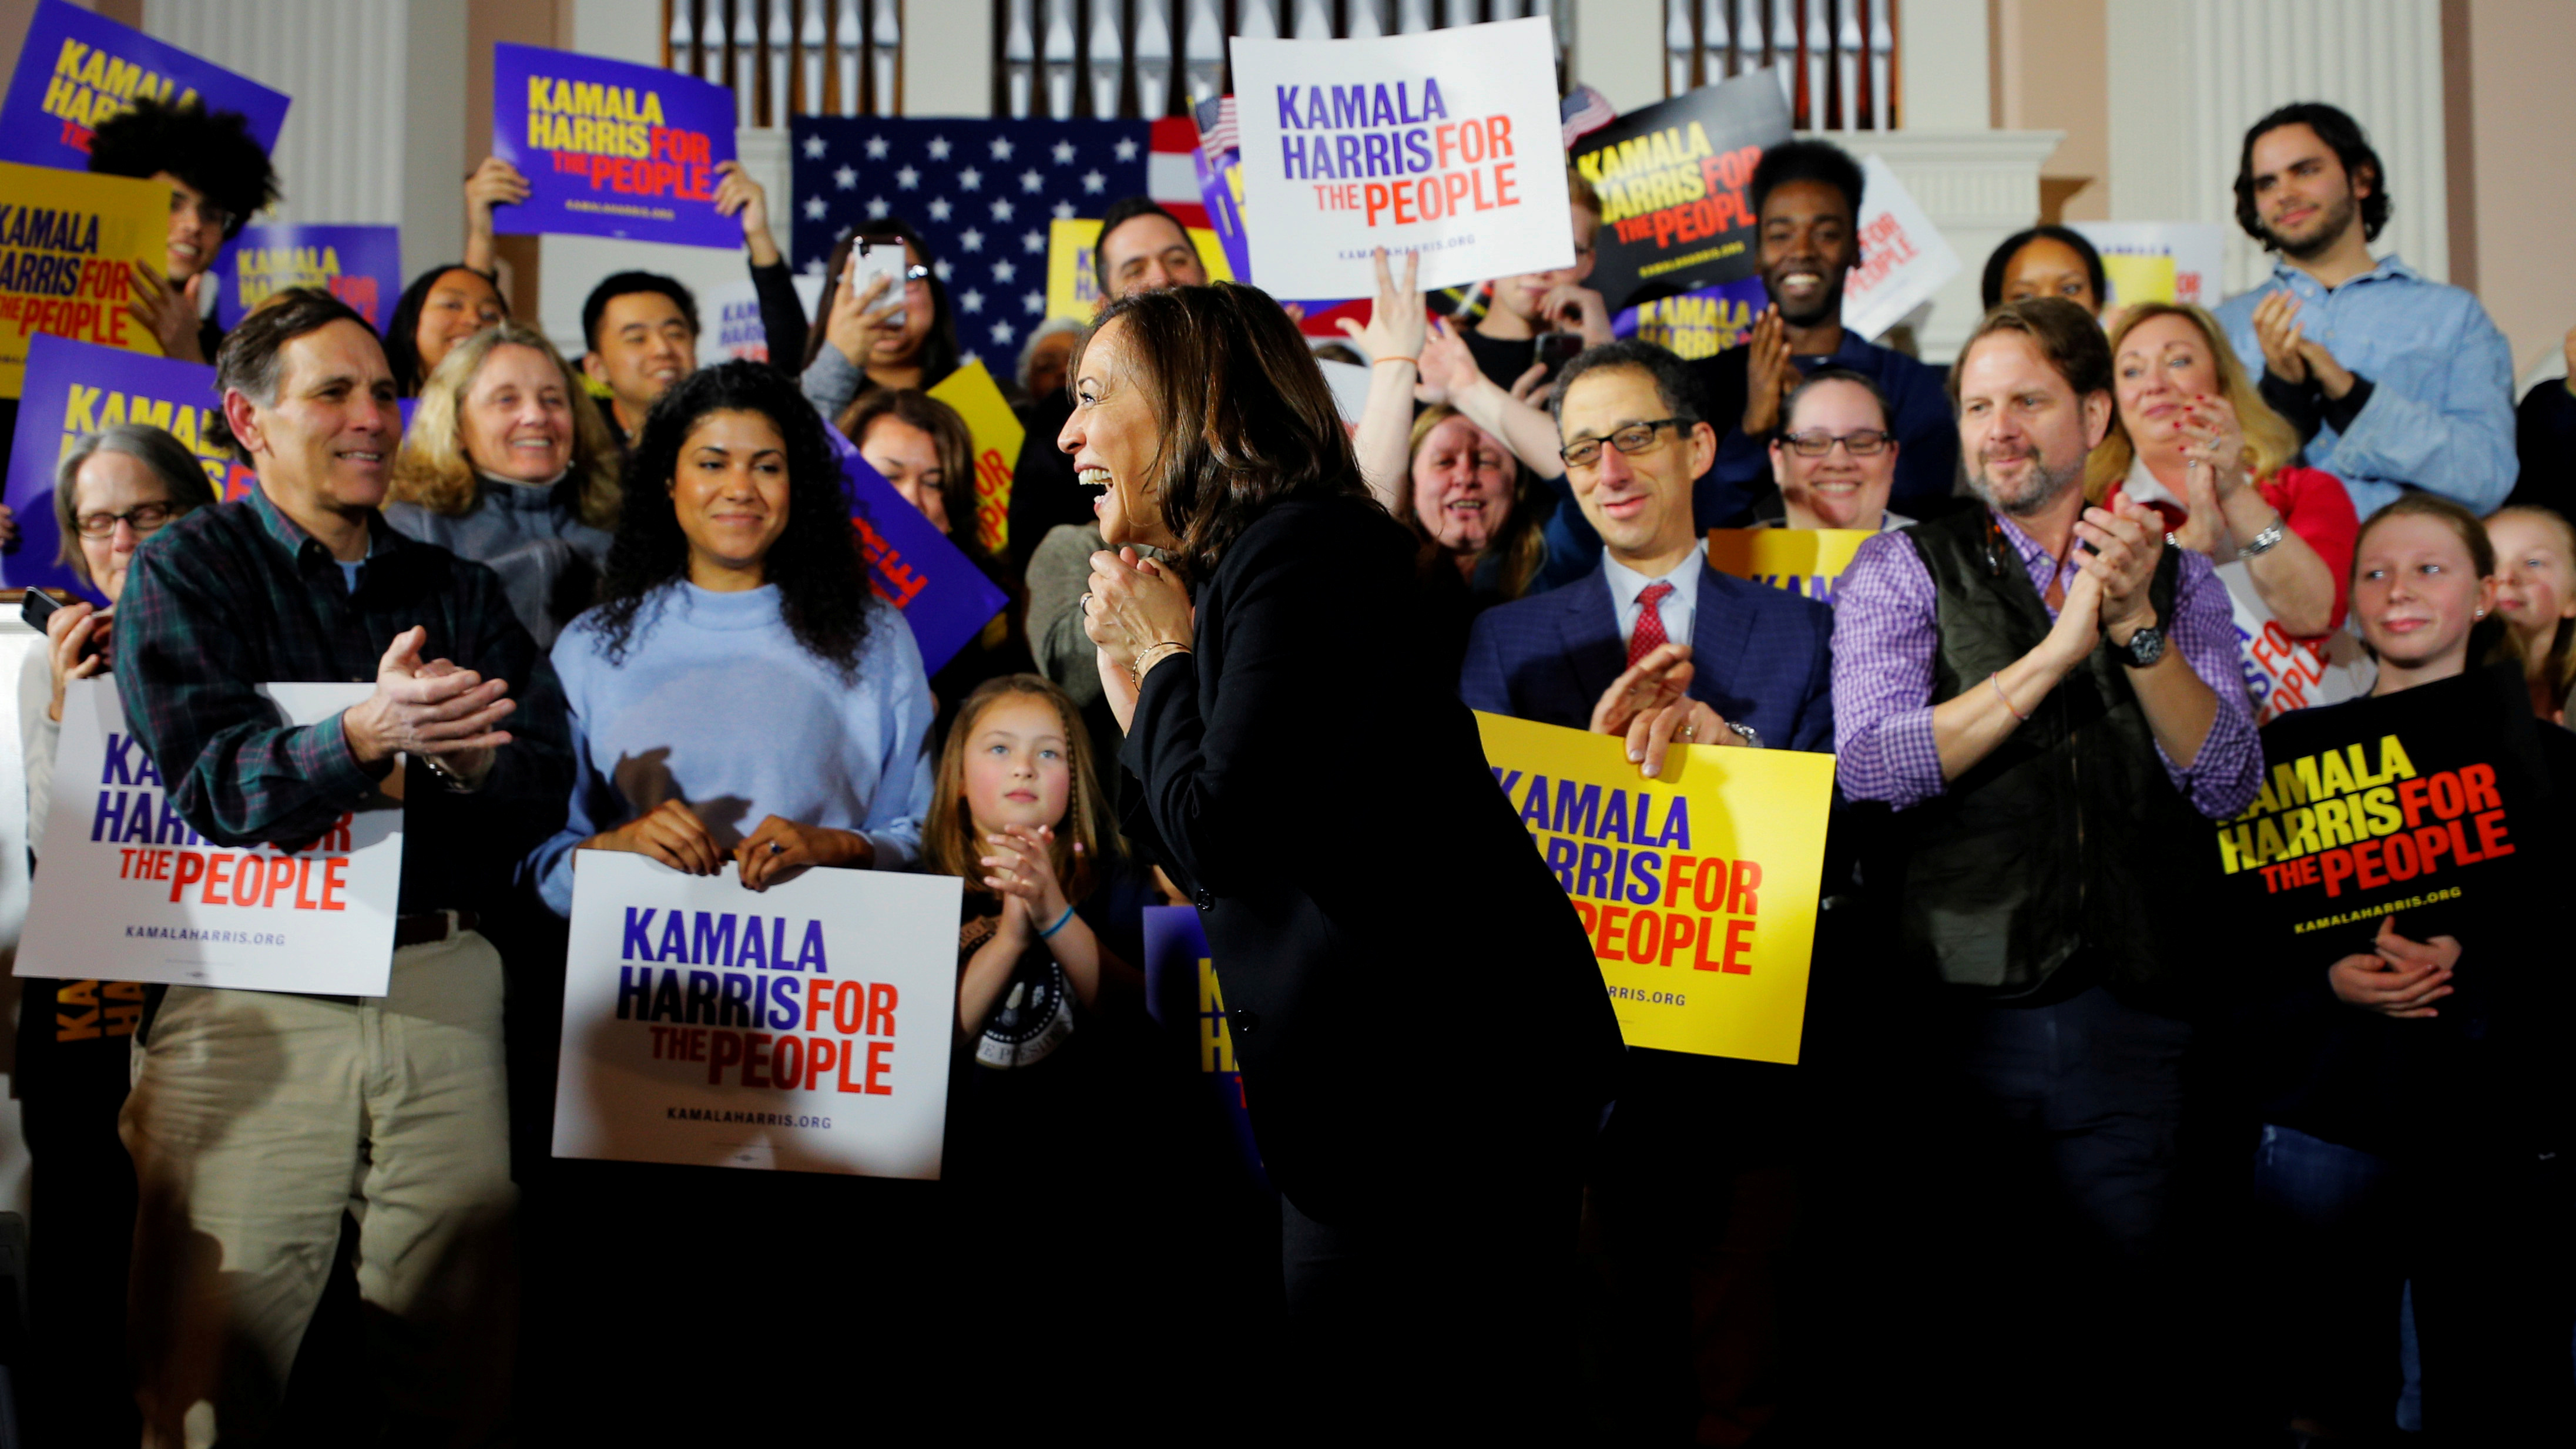 Democratic 2020 U.S. presidential candidate and U.S. Senator Kamala Harris takes the stage for a campaign town hall meeting in Portsmouth, New Hampshire, U.S., February 18, 2019. REUTERS/Brian Snyder